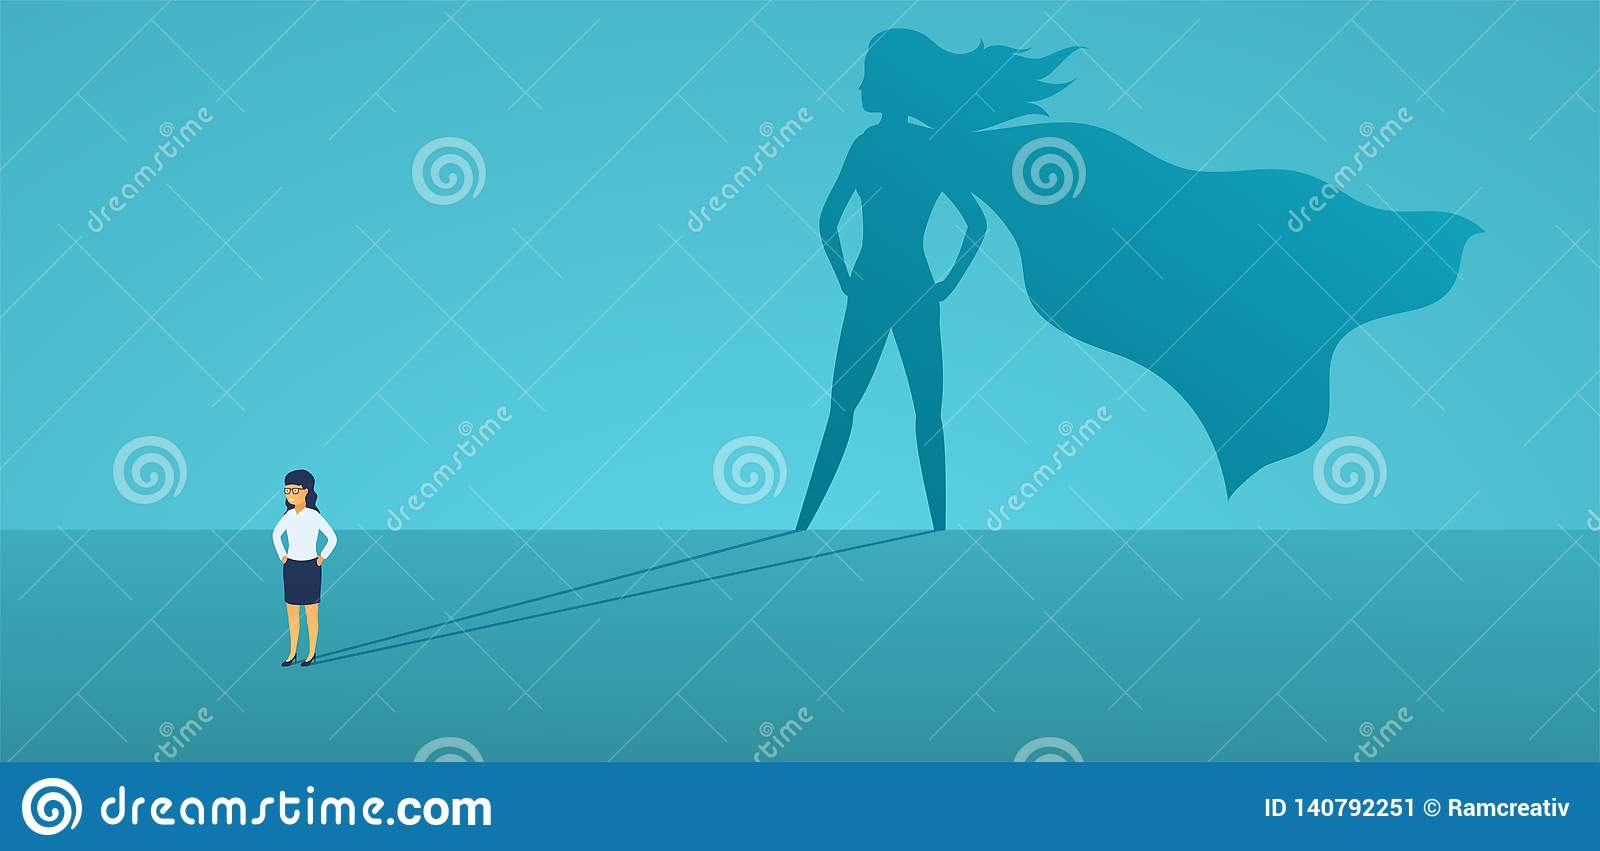 Business woman with big shadow superhero. Super manager leader in business. Concept of success, quality of leadership.